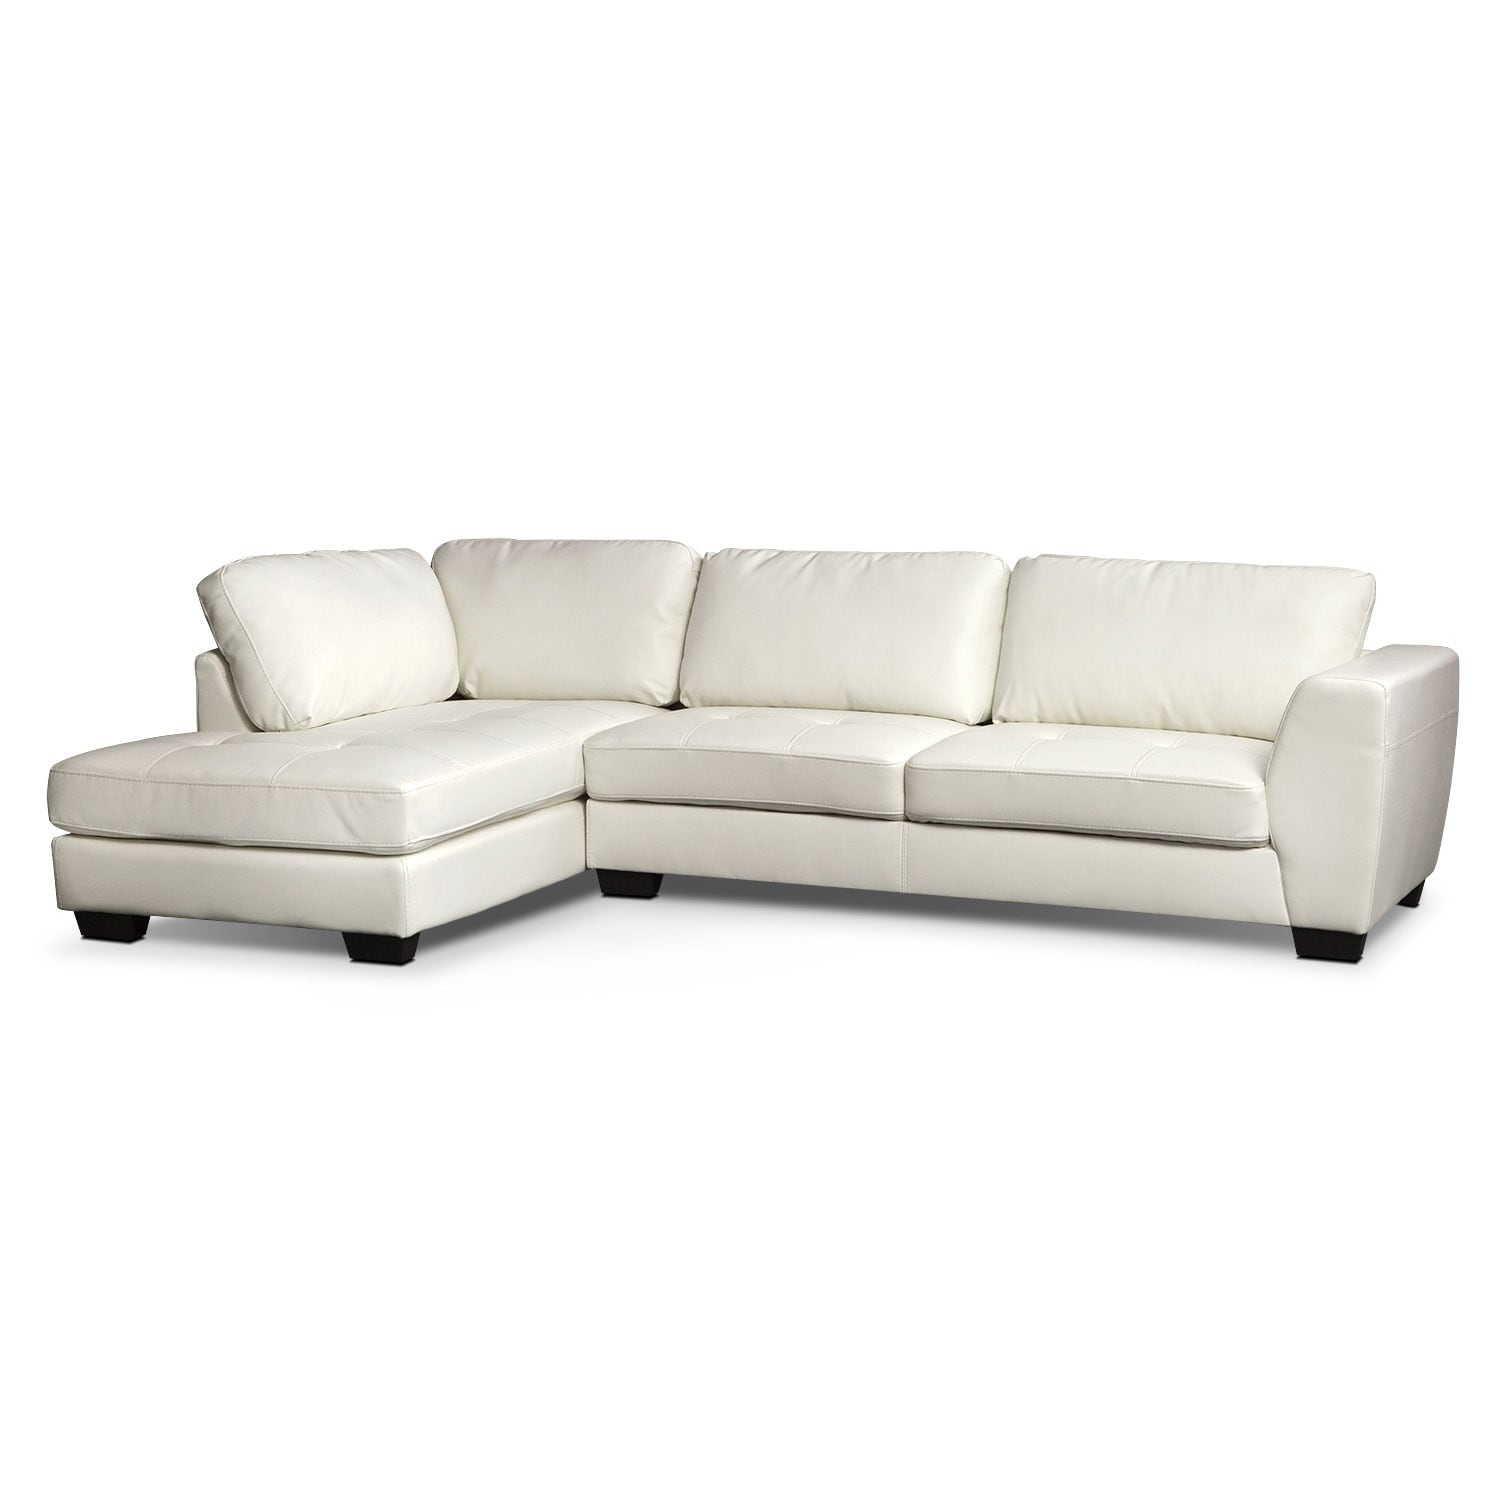 Ciera III 2 Pc. Sectional